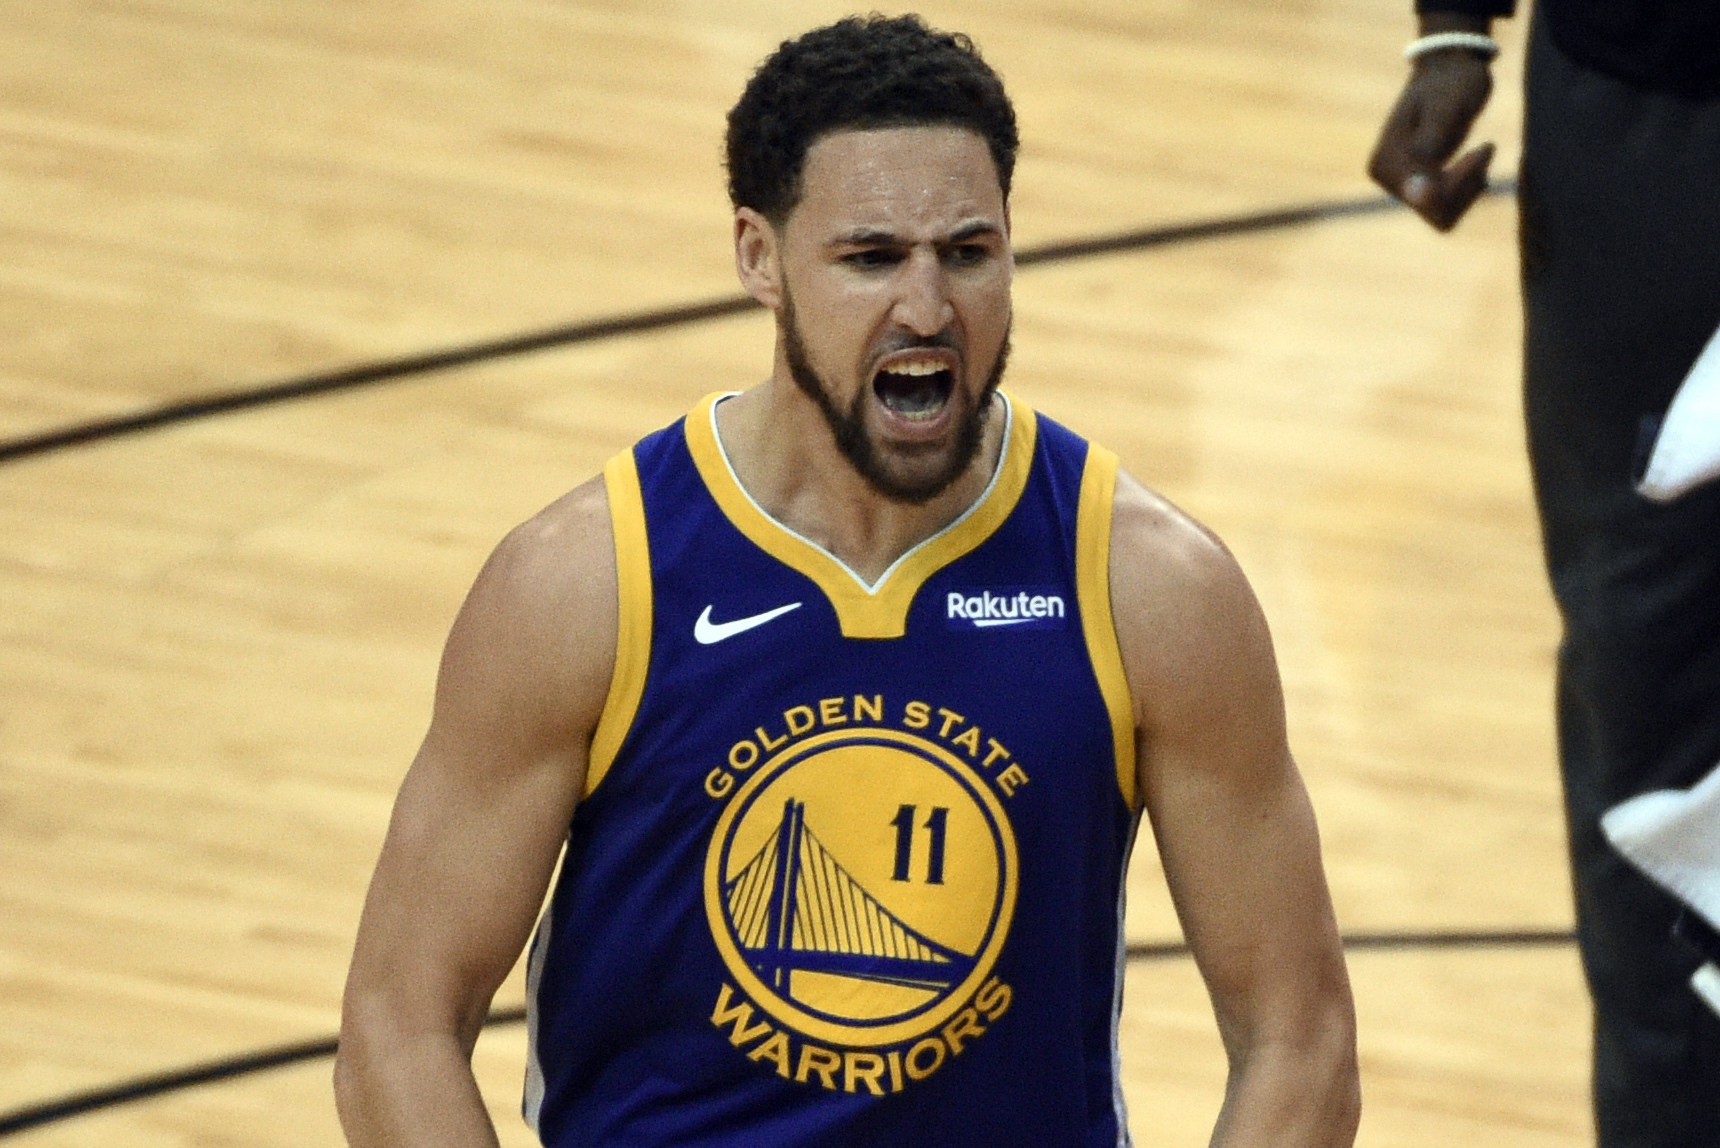 Report: Warriors' Klay Thompson Training Without Restrictions After ACL  Injury | Bleacher Report | Latest News, Videos and Highlights